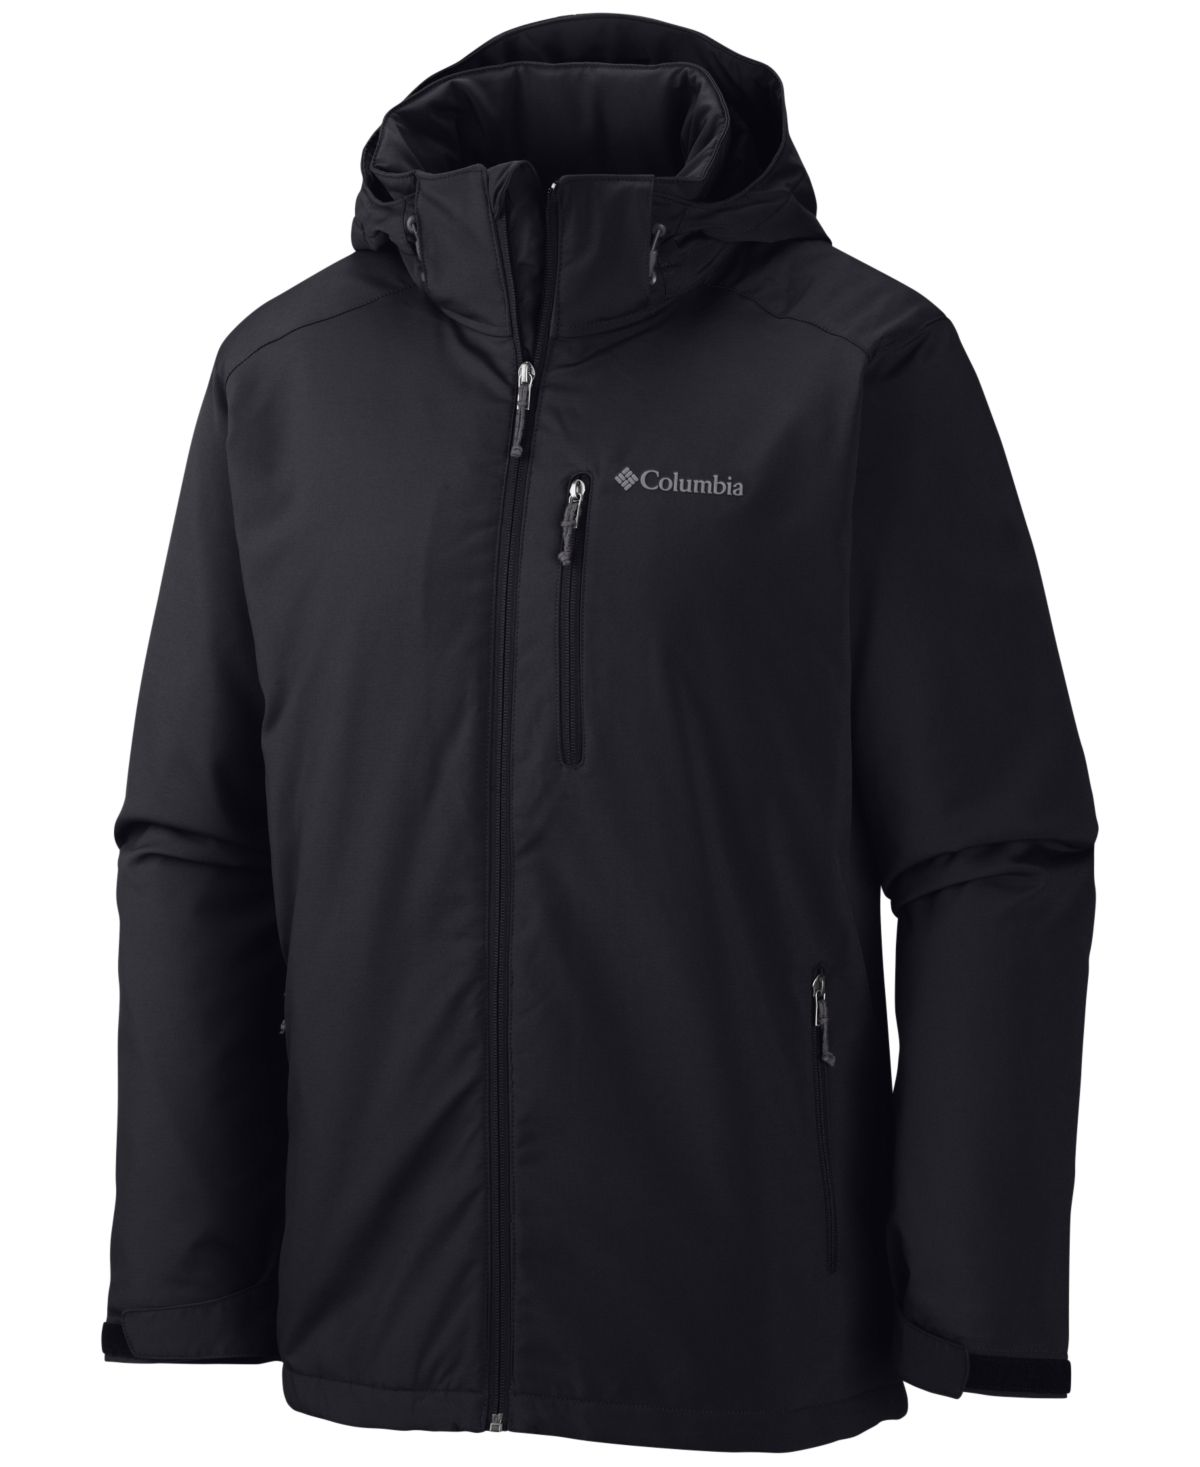 Columbia Big and Tall Men's Eager Air 3 in 1 Omni Shield